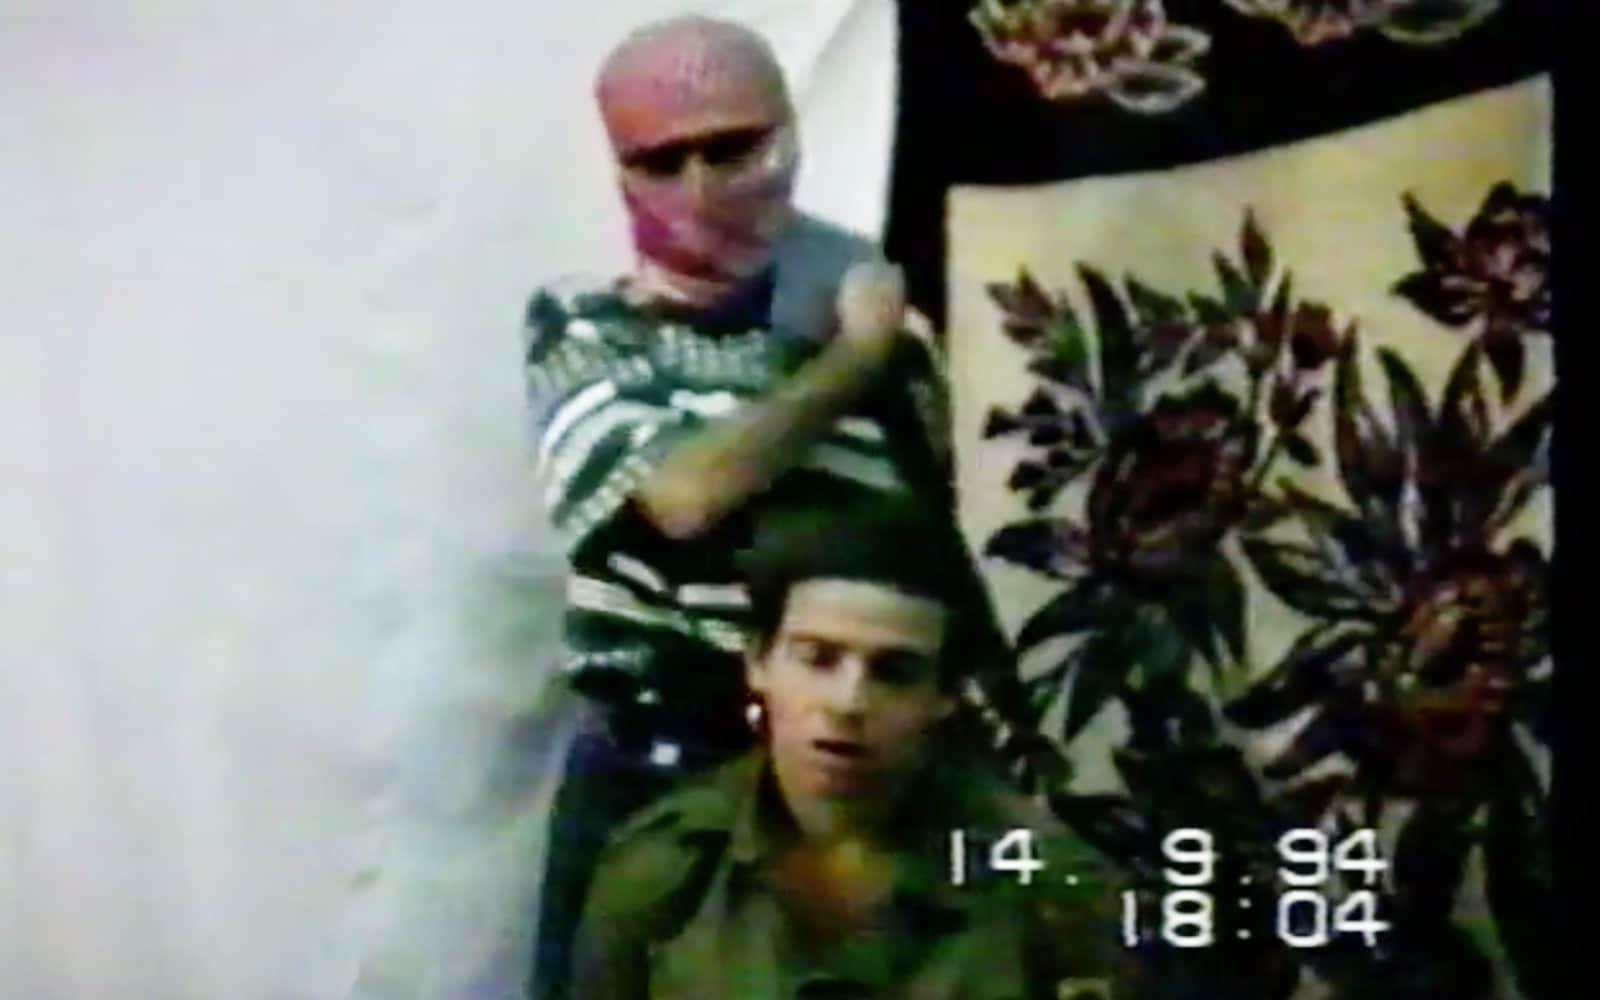 Nachshon Wachsman appeared in a ransom video message sent to the Israeli authorities by his captors